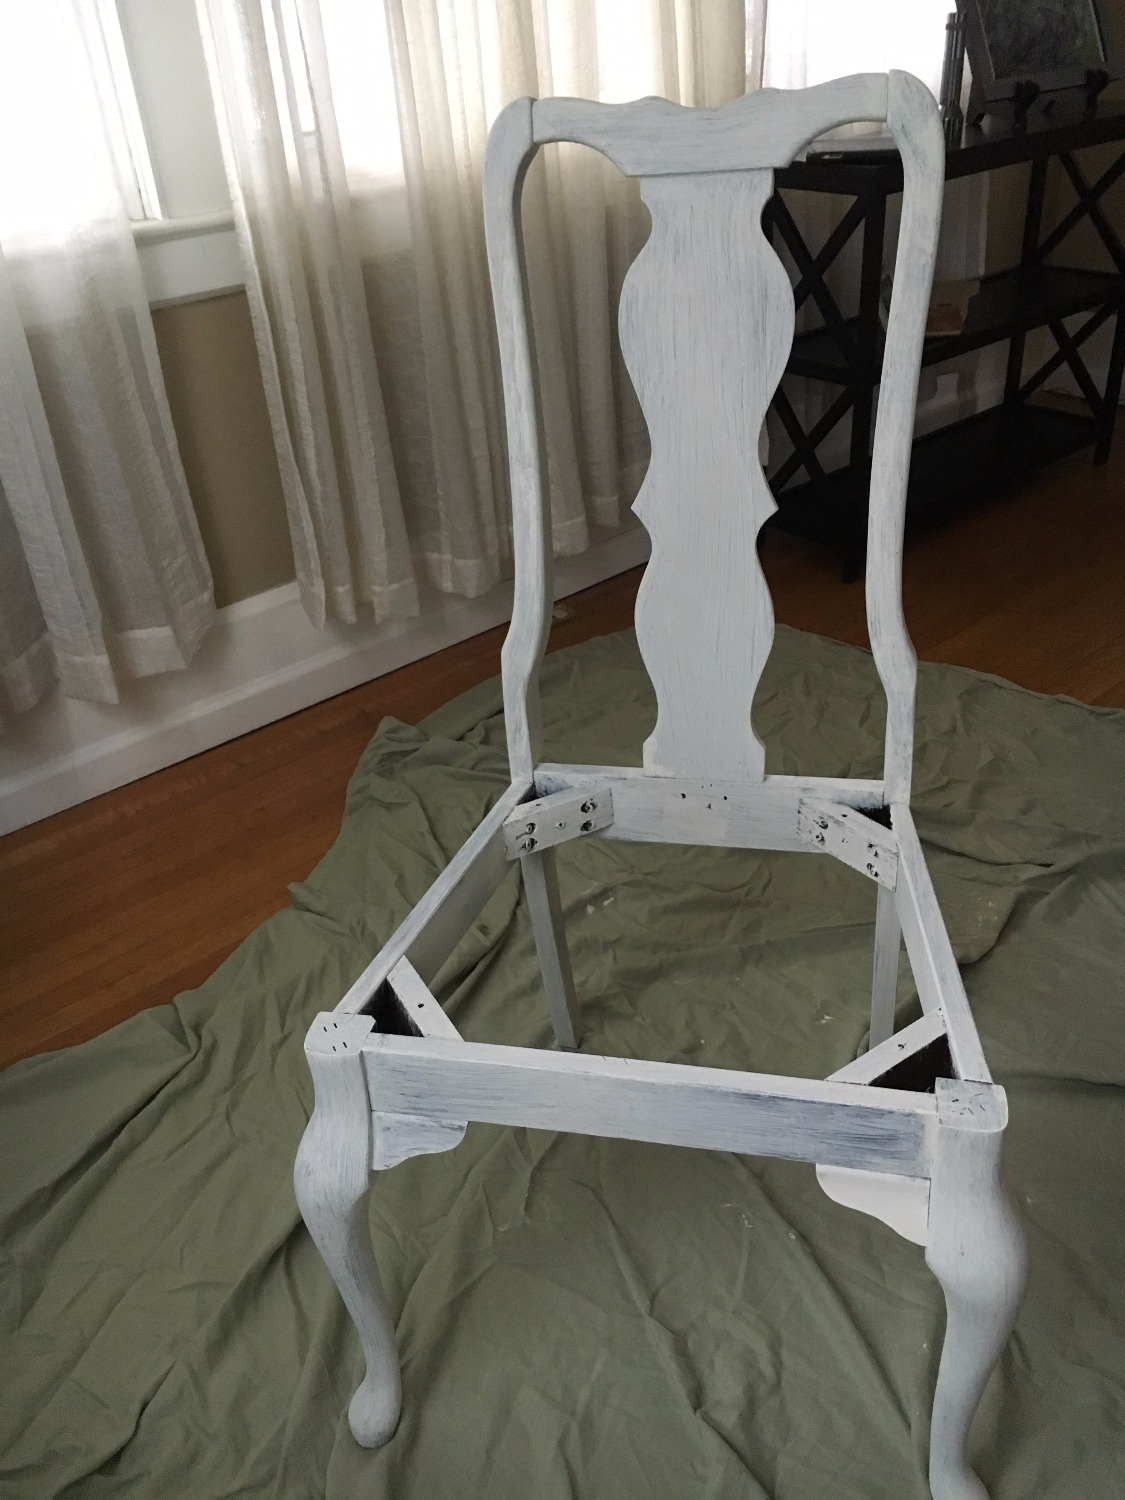 First coat of paint on Dining Room Chairs